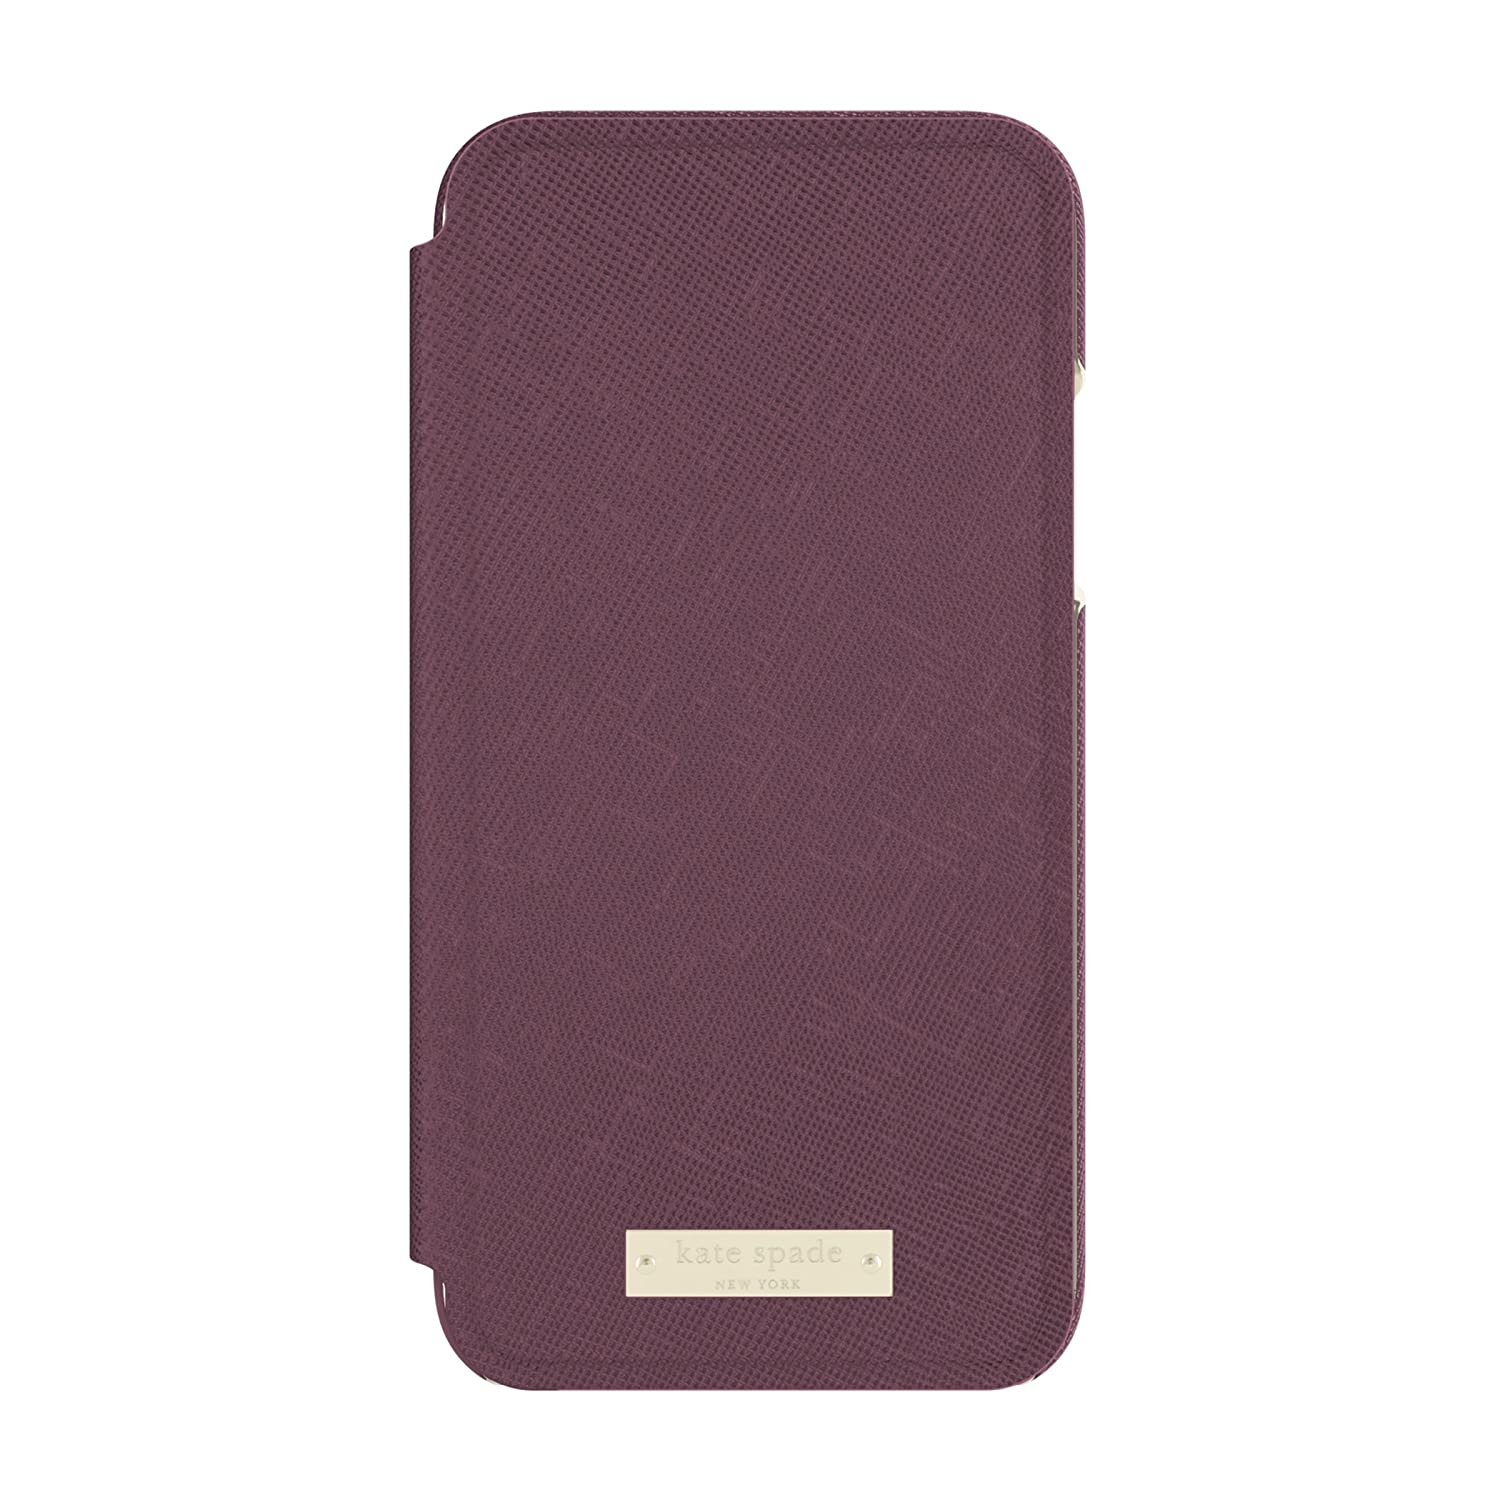 0430d2205a89 Amazon.com  kate spade new york Folio Case for iPhone X - Mahogany  Cell  Phones   Accessories